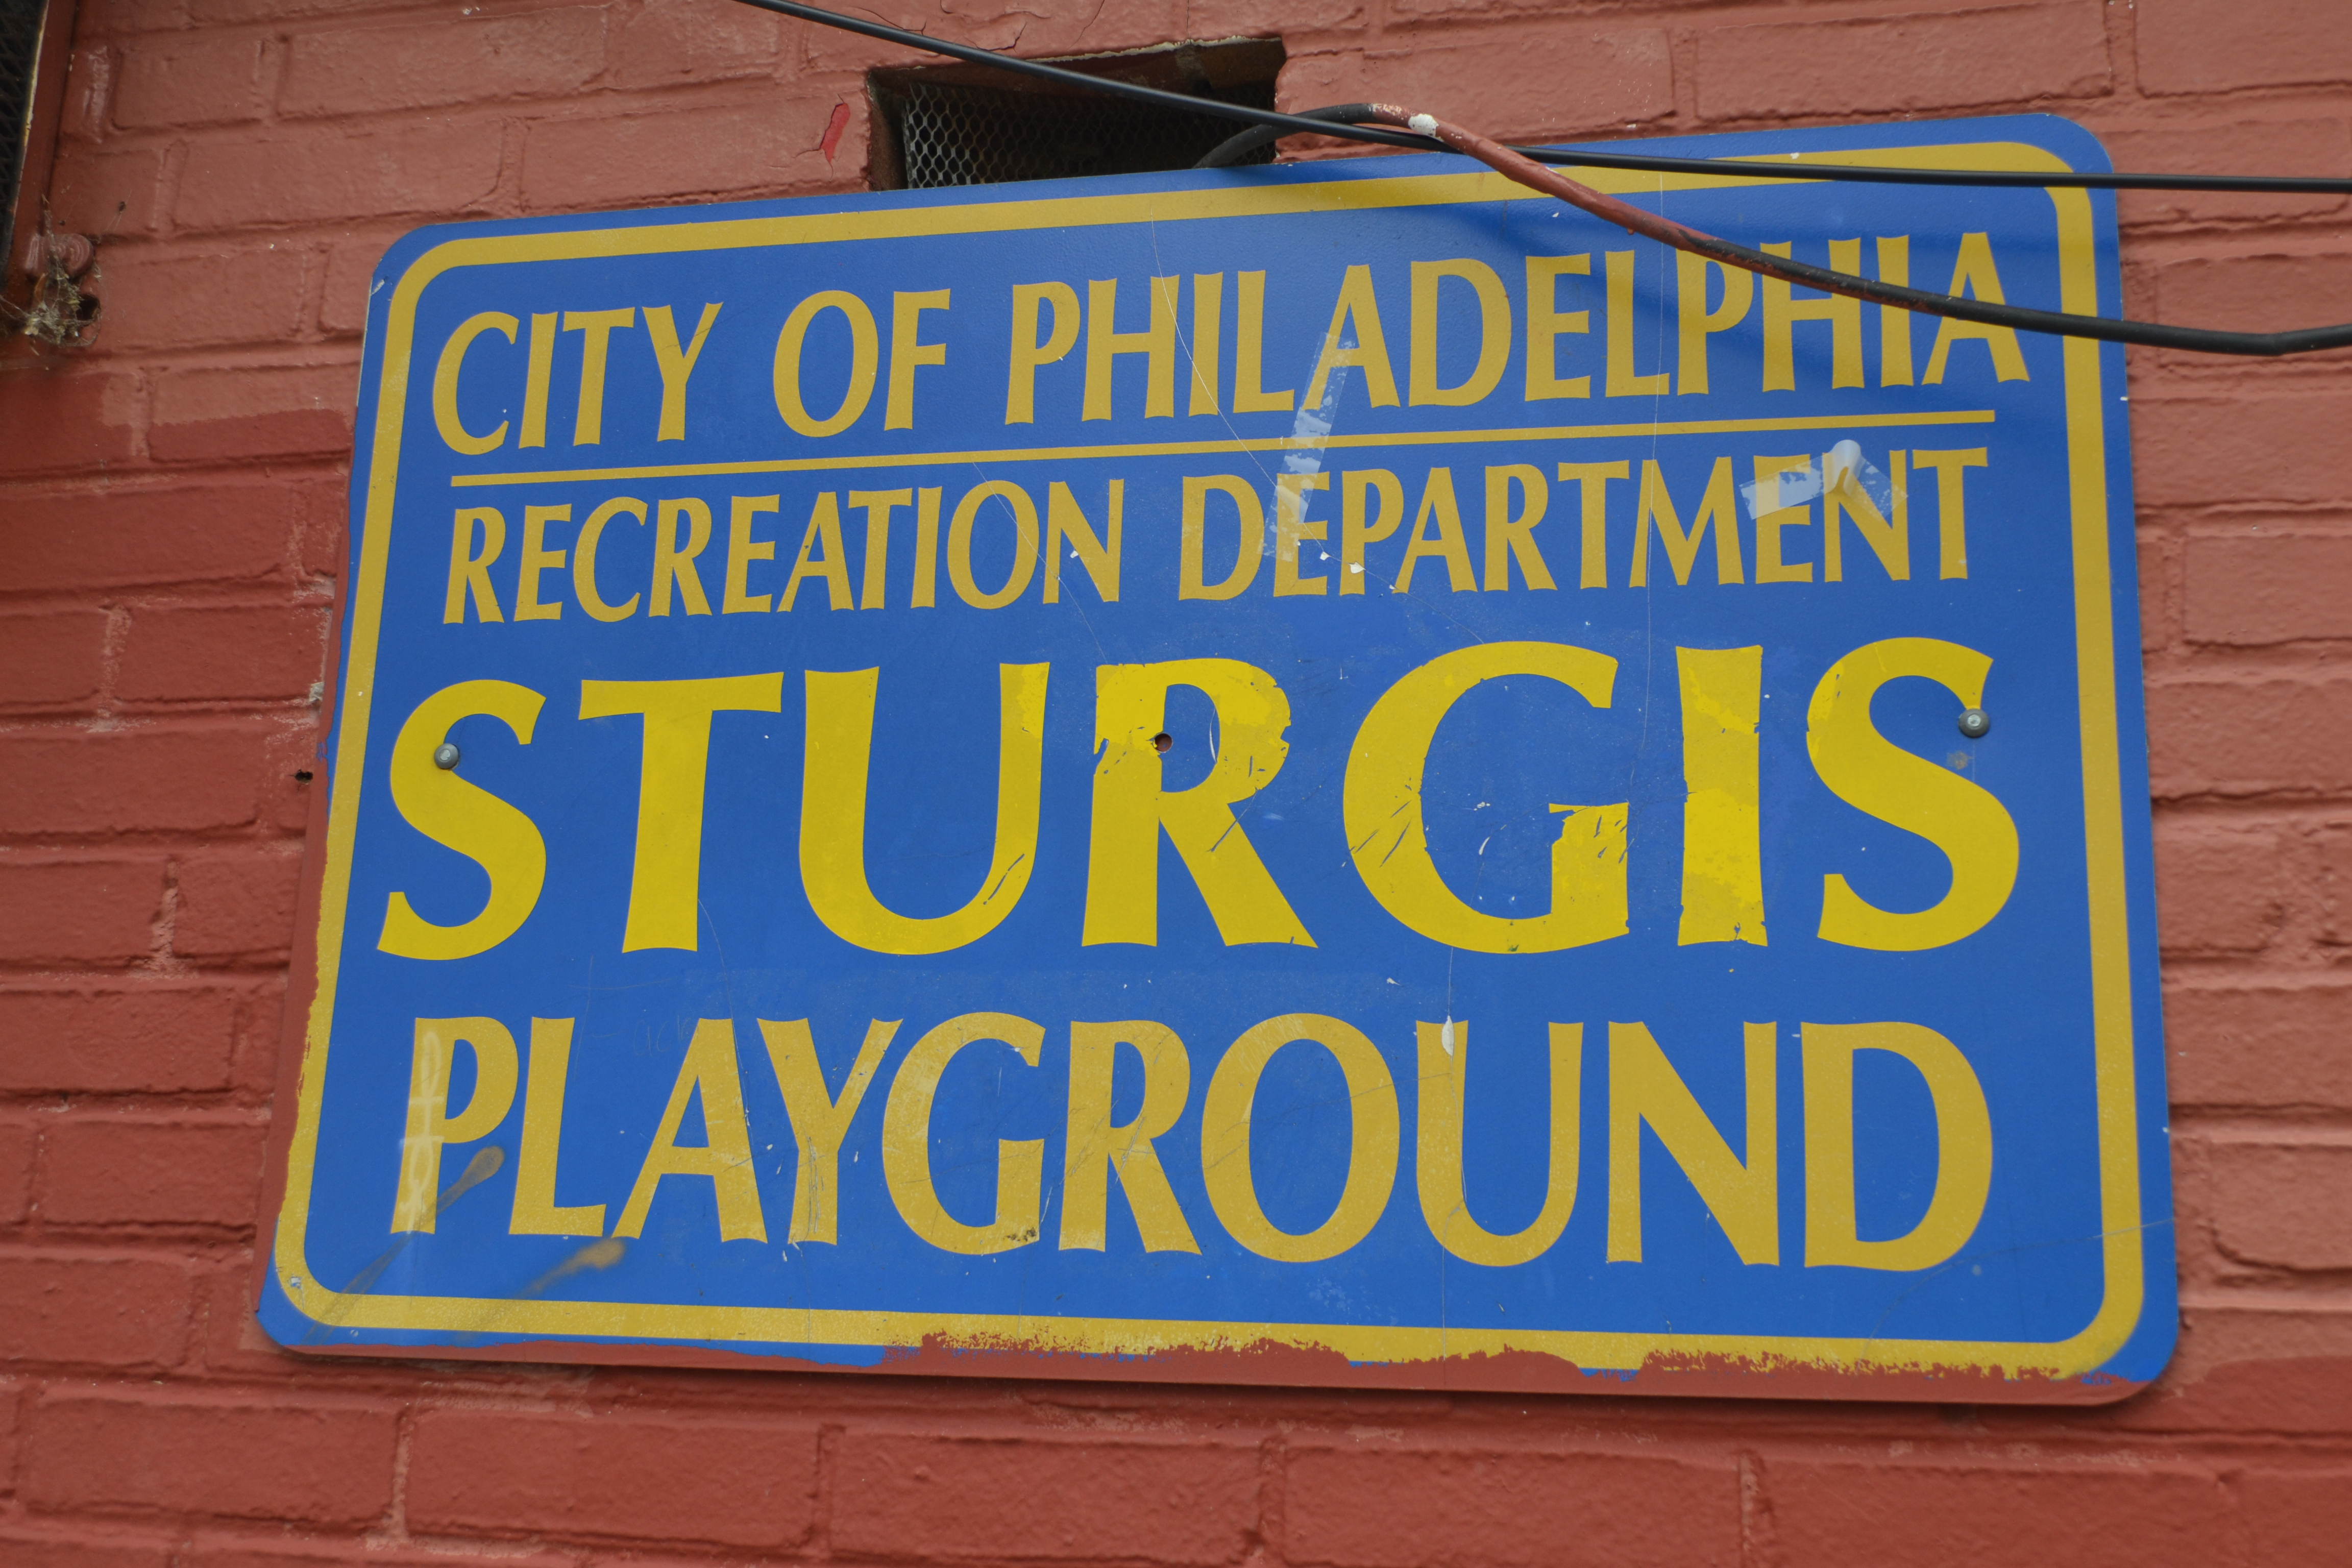 Sturgis Playground will get a new 5,090 square foot recreation center designed by SMP Architects